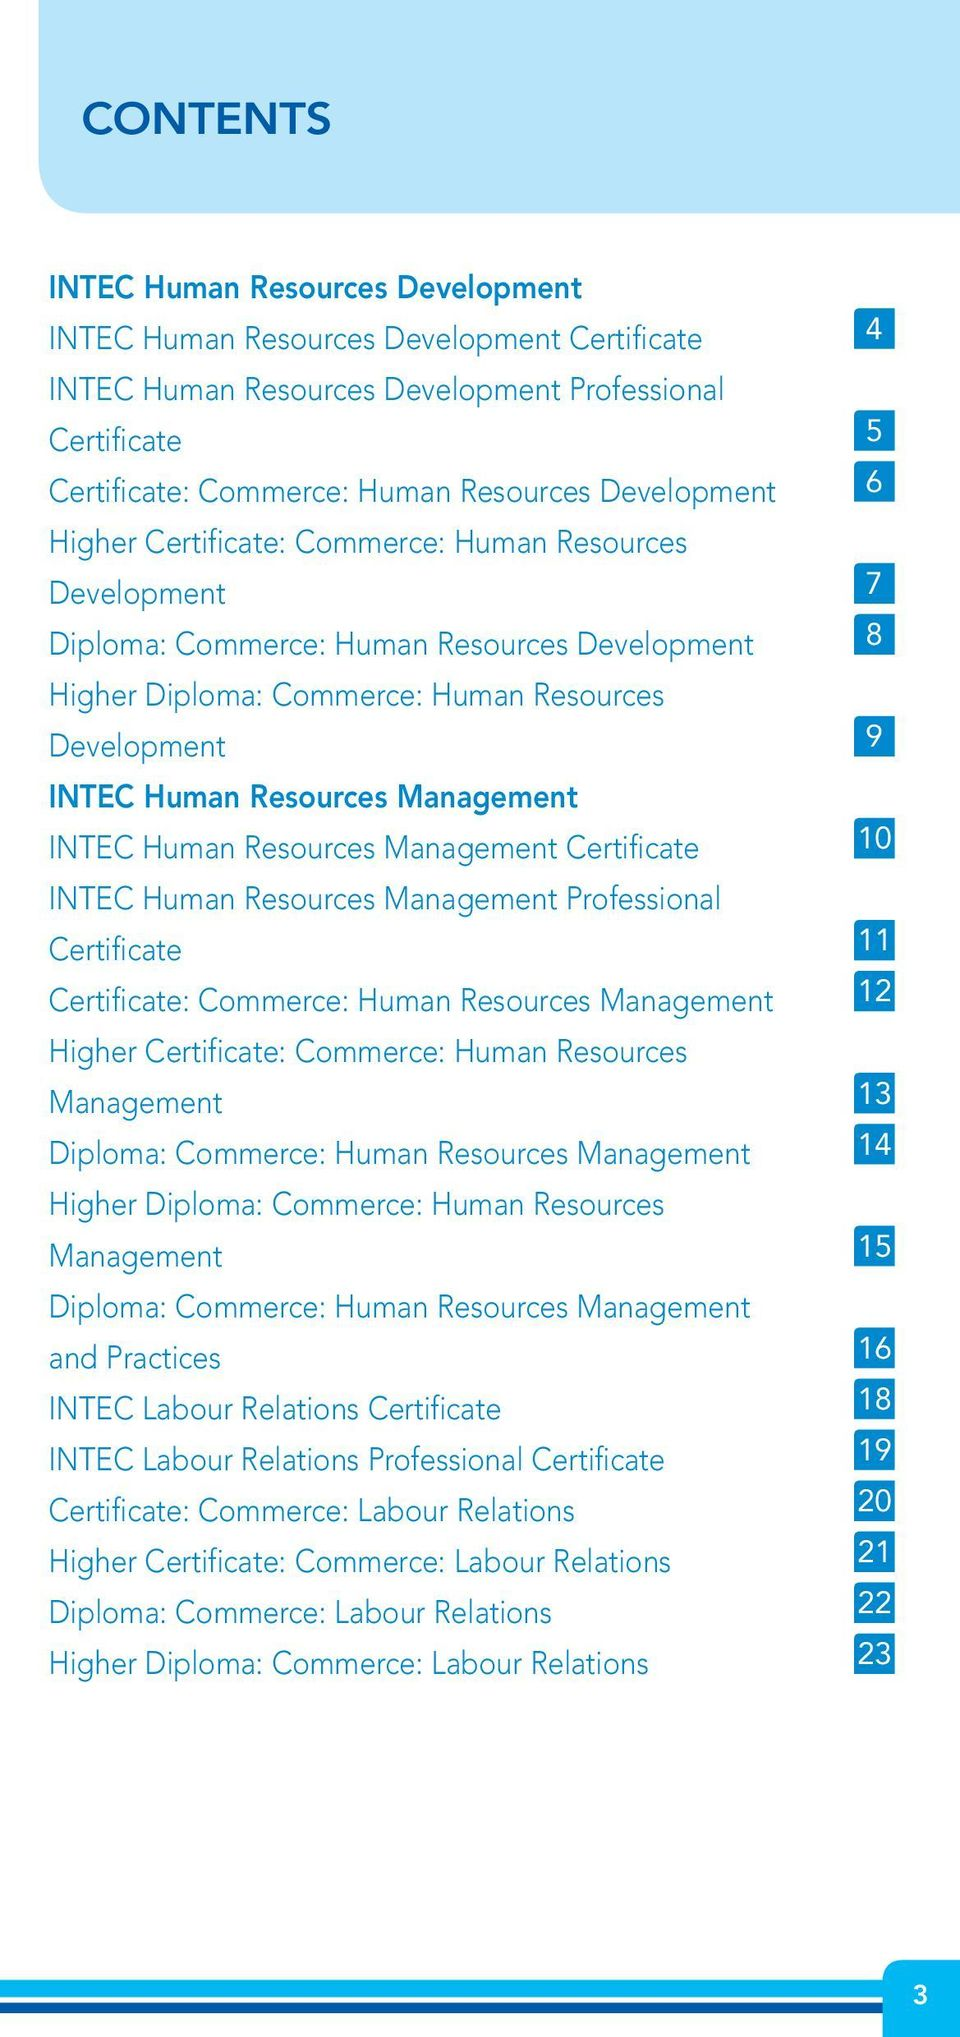 Resources Management INTEC Human Resources Management Certificate 10 INTEC Human Resources Management Professional Certificate 11 Certificate: Commerce: Human Resources Management 12 Higher